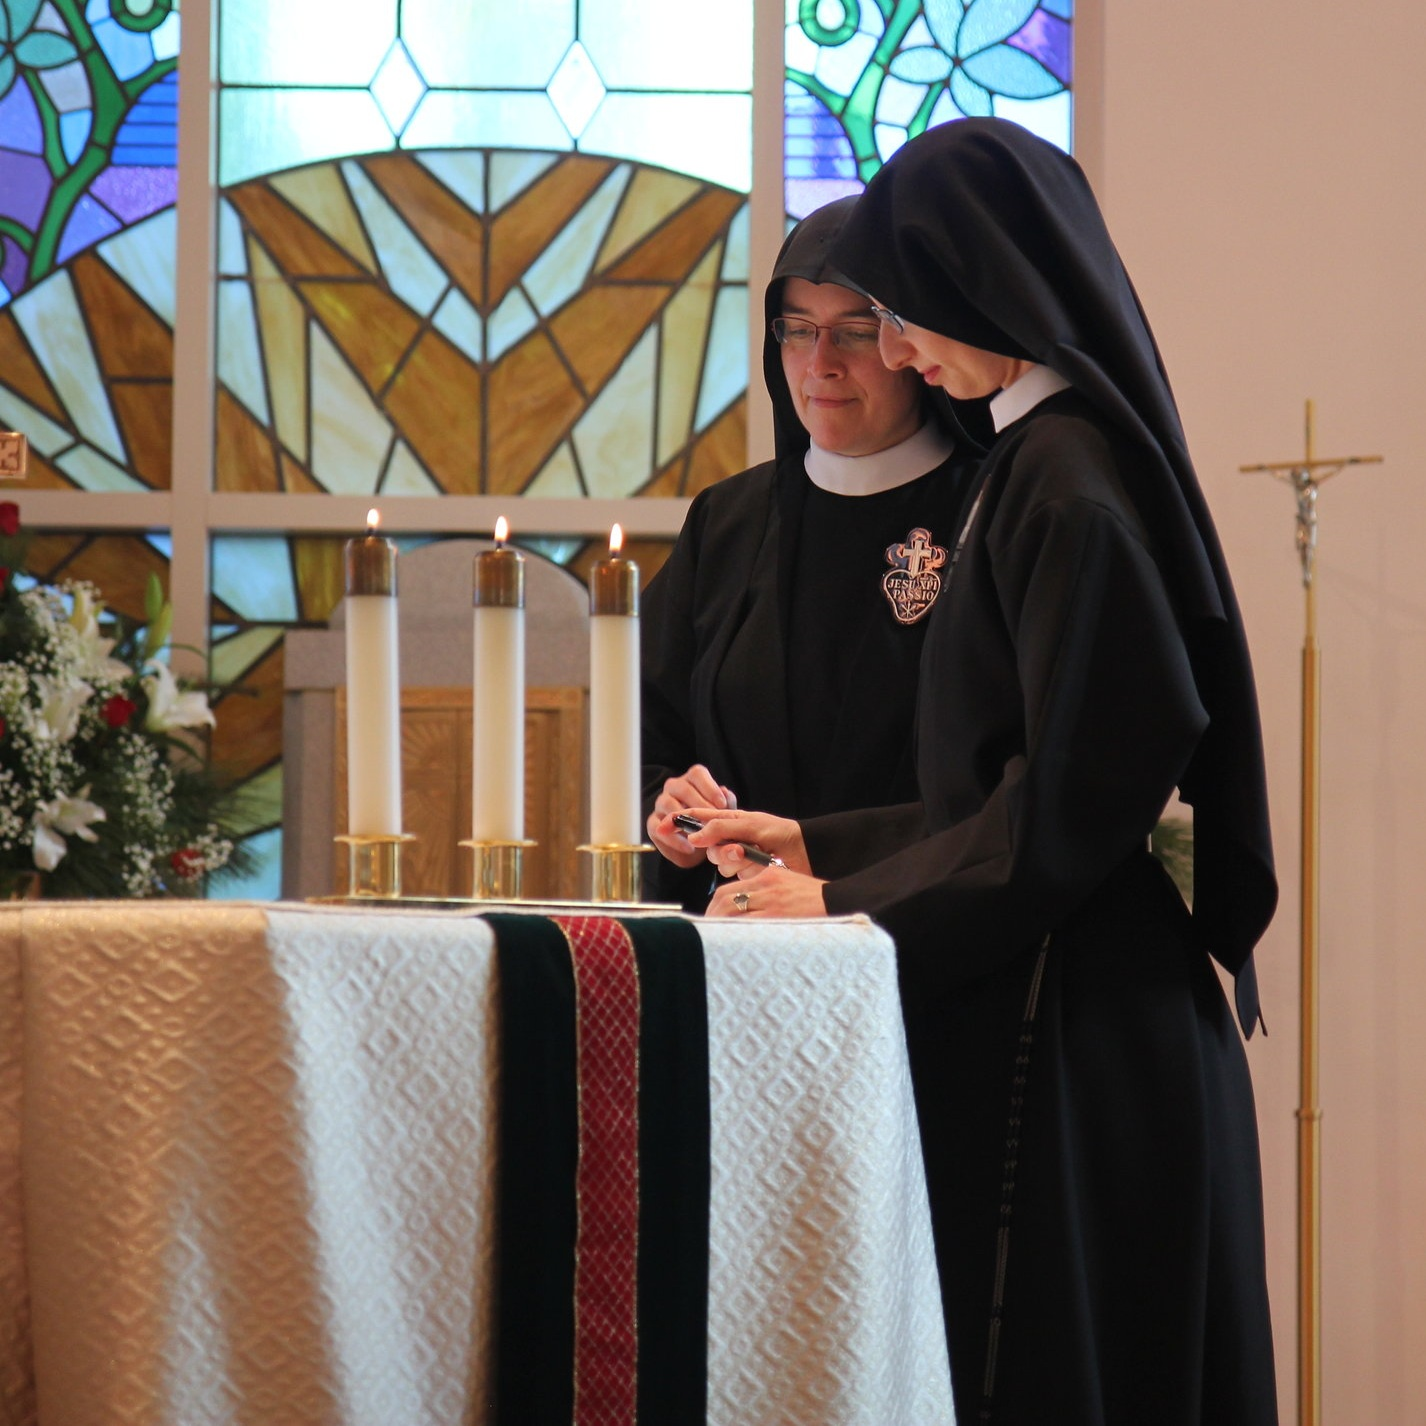 Sr. Cecilia Maria signs the profession formula which remains on the altar for the rest of the Mass, signifying her oblation of self in union with Jesus' Eucharistic Sacrifice.